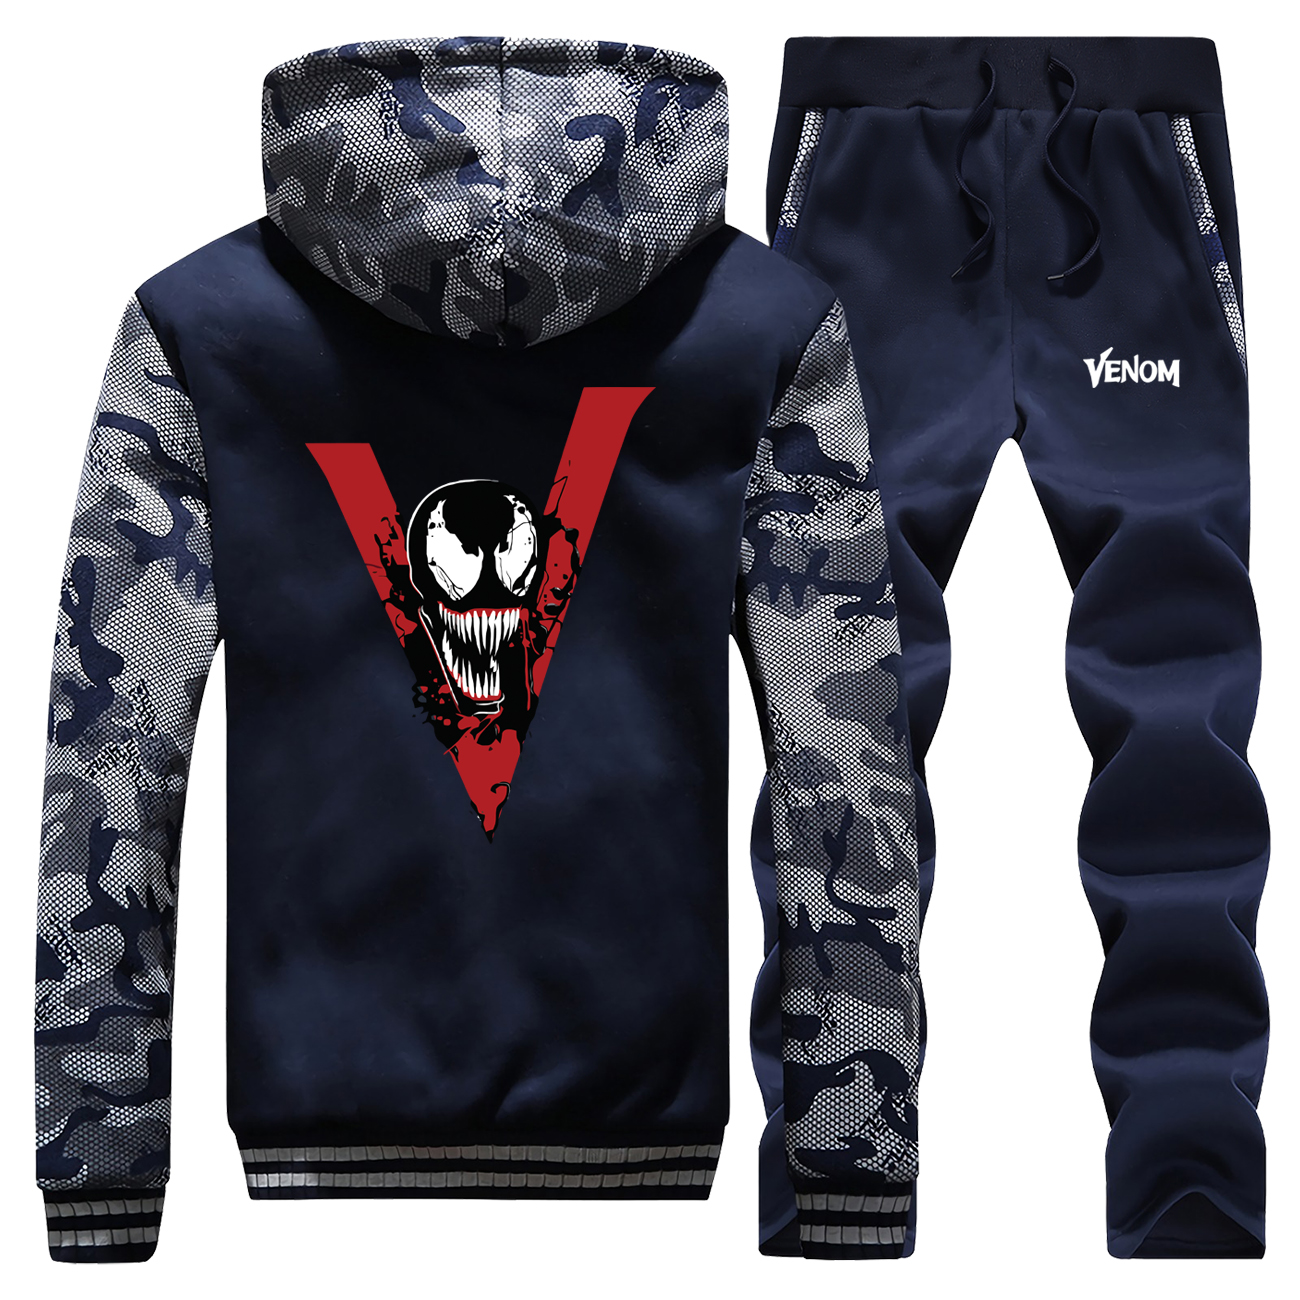 Hot Sale Winter Venom Cool Superhero Marvel Cartoon Mens Camouflage Sportswear Hoodies Coat Thick Suit Jackets+Pants 2 Piece Set